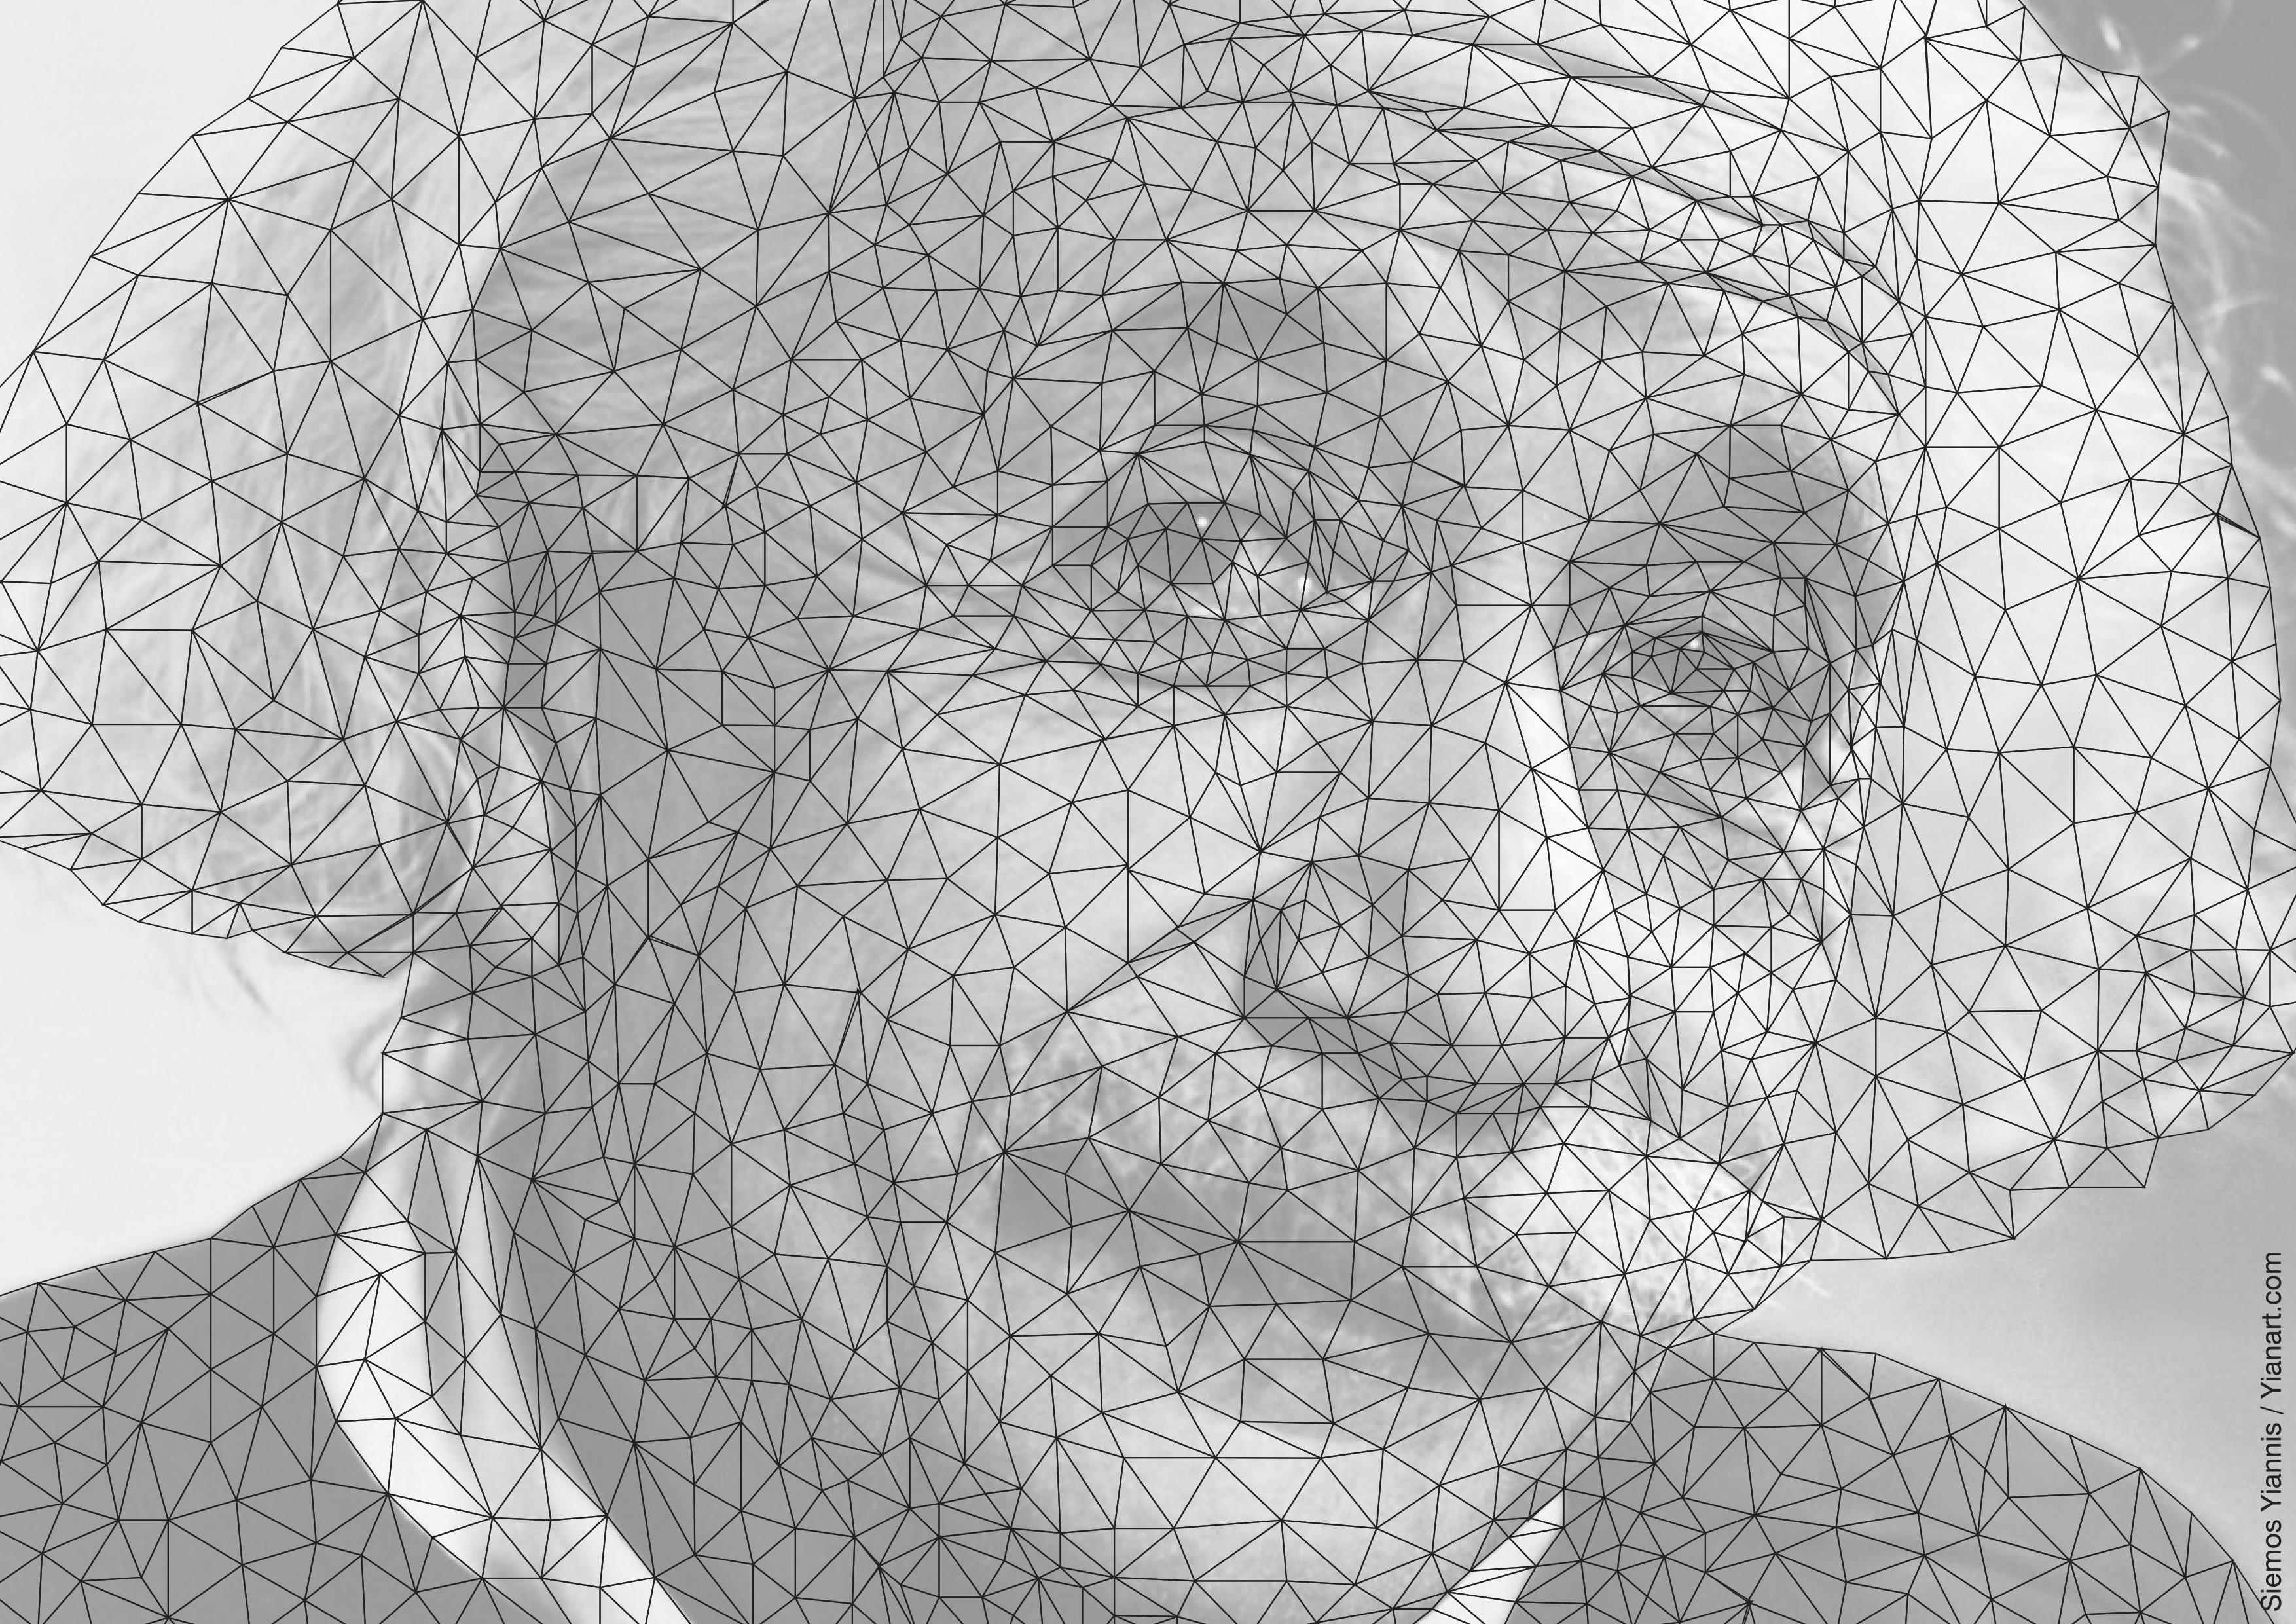 Albert Einstein_Closed_wired_Yianart.com